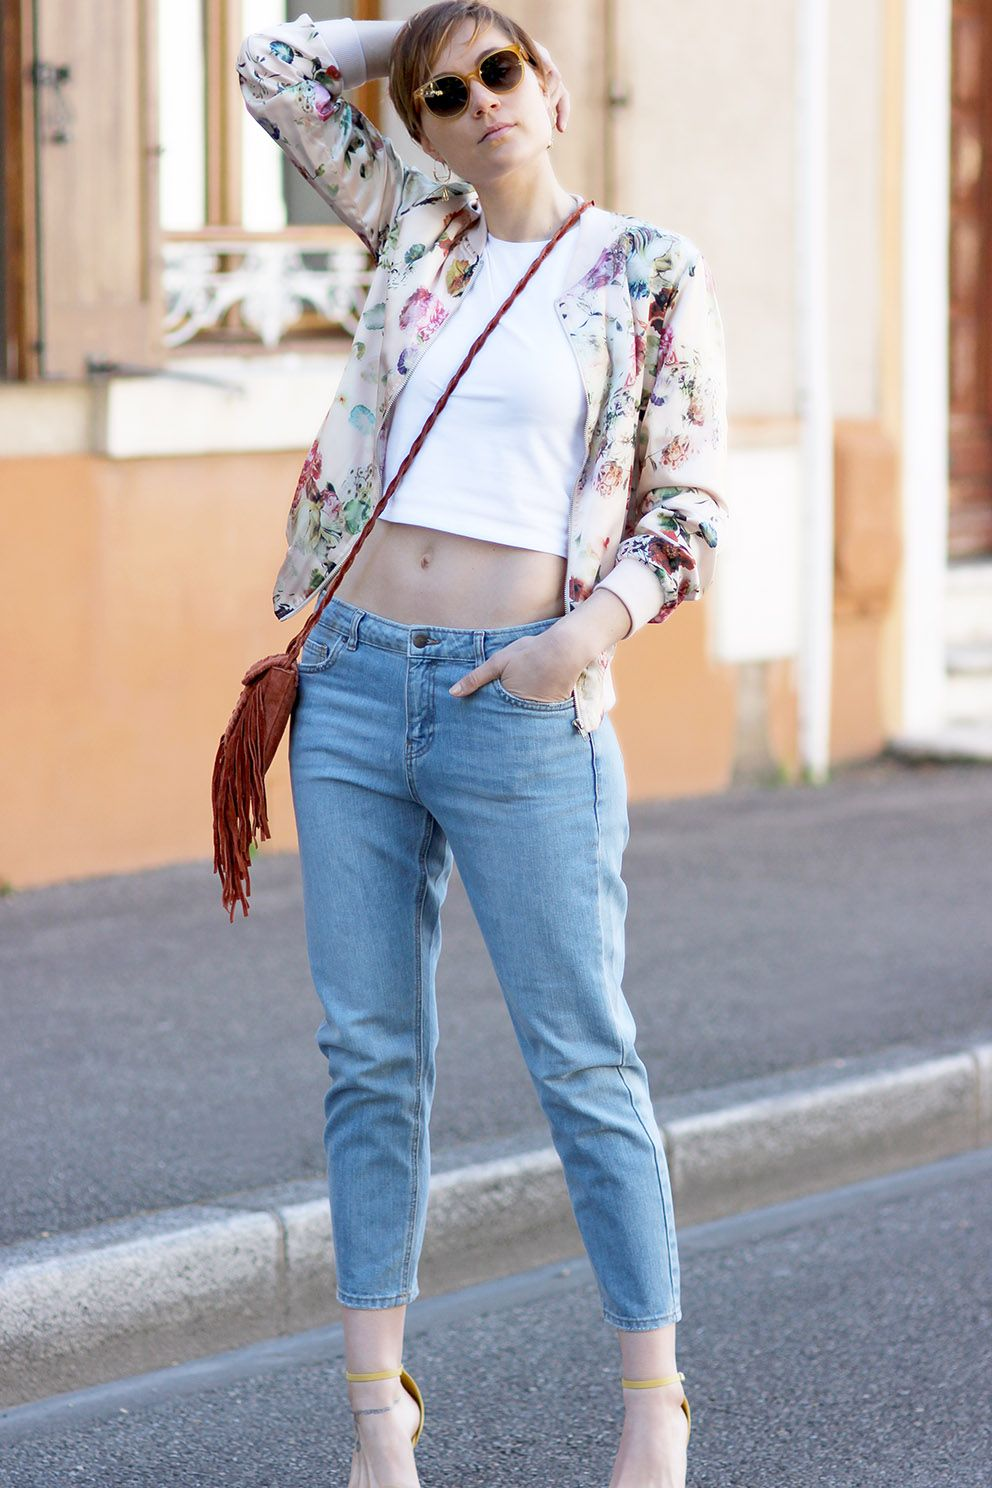 968890cbb41 AMAZING outfit with a floral bomber jacket and Celine sunglasses   leblogdartlex http